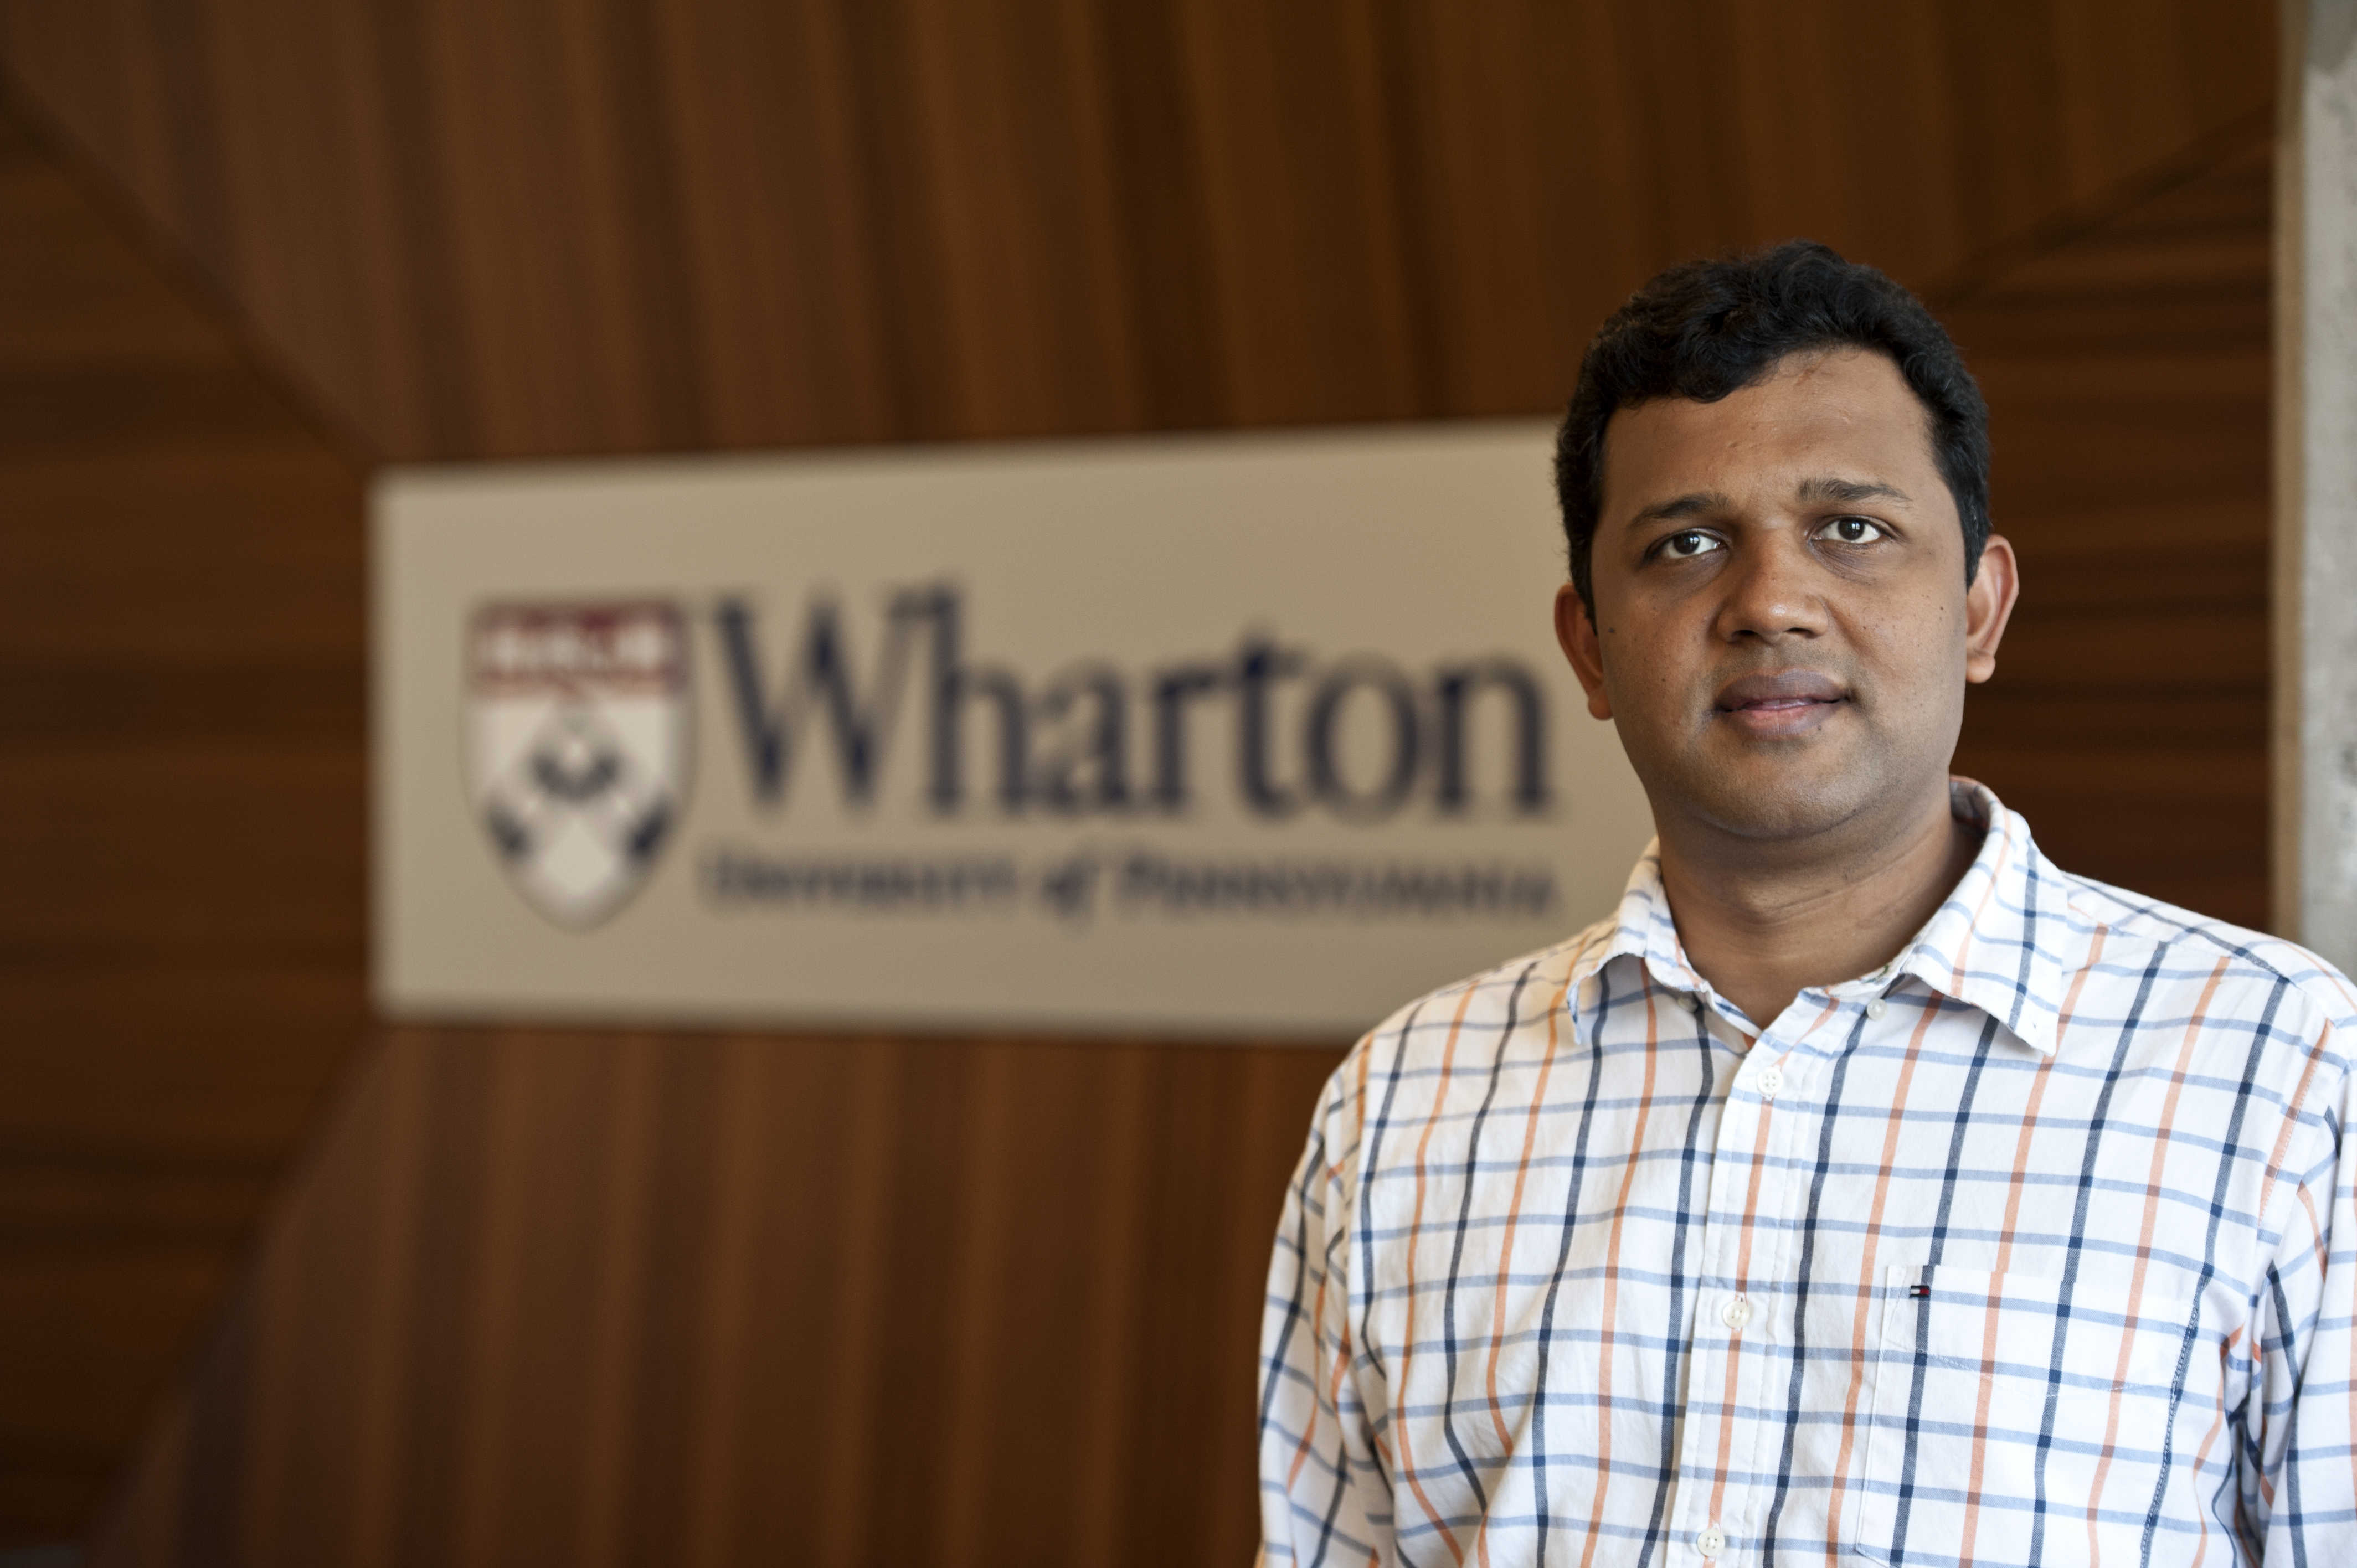 mba essays wharton Serious about getting into the wharton mba read all about admissions, deadlines, fees, class profile, essay writing tips, blogs.